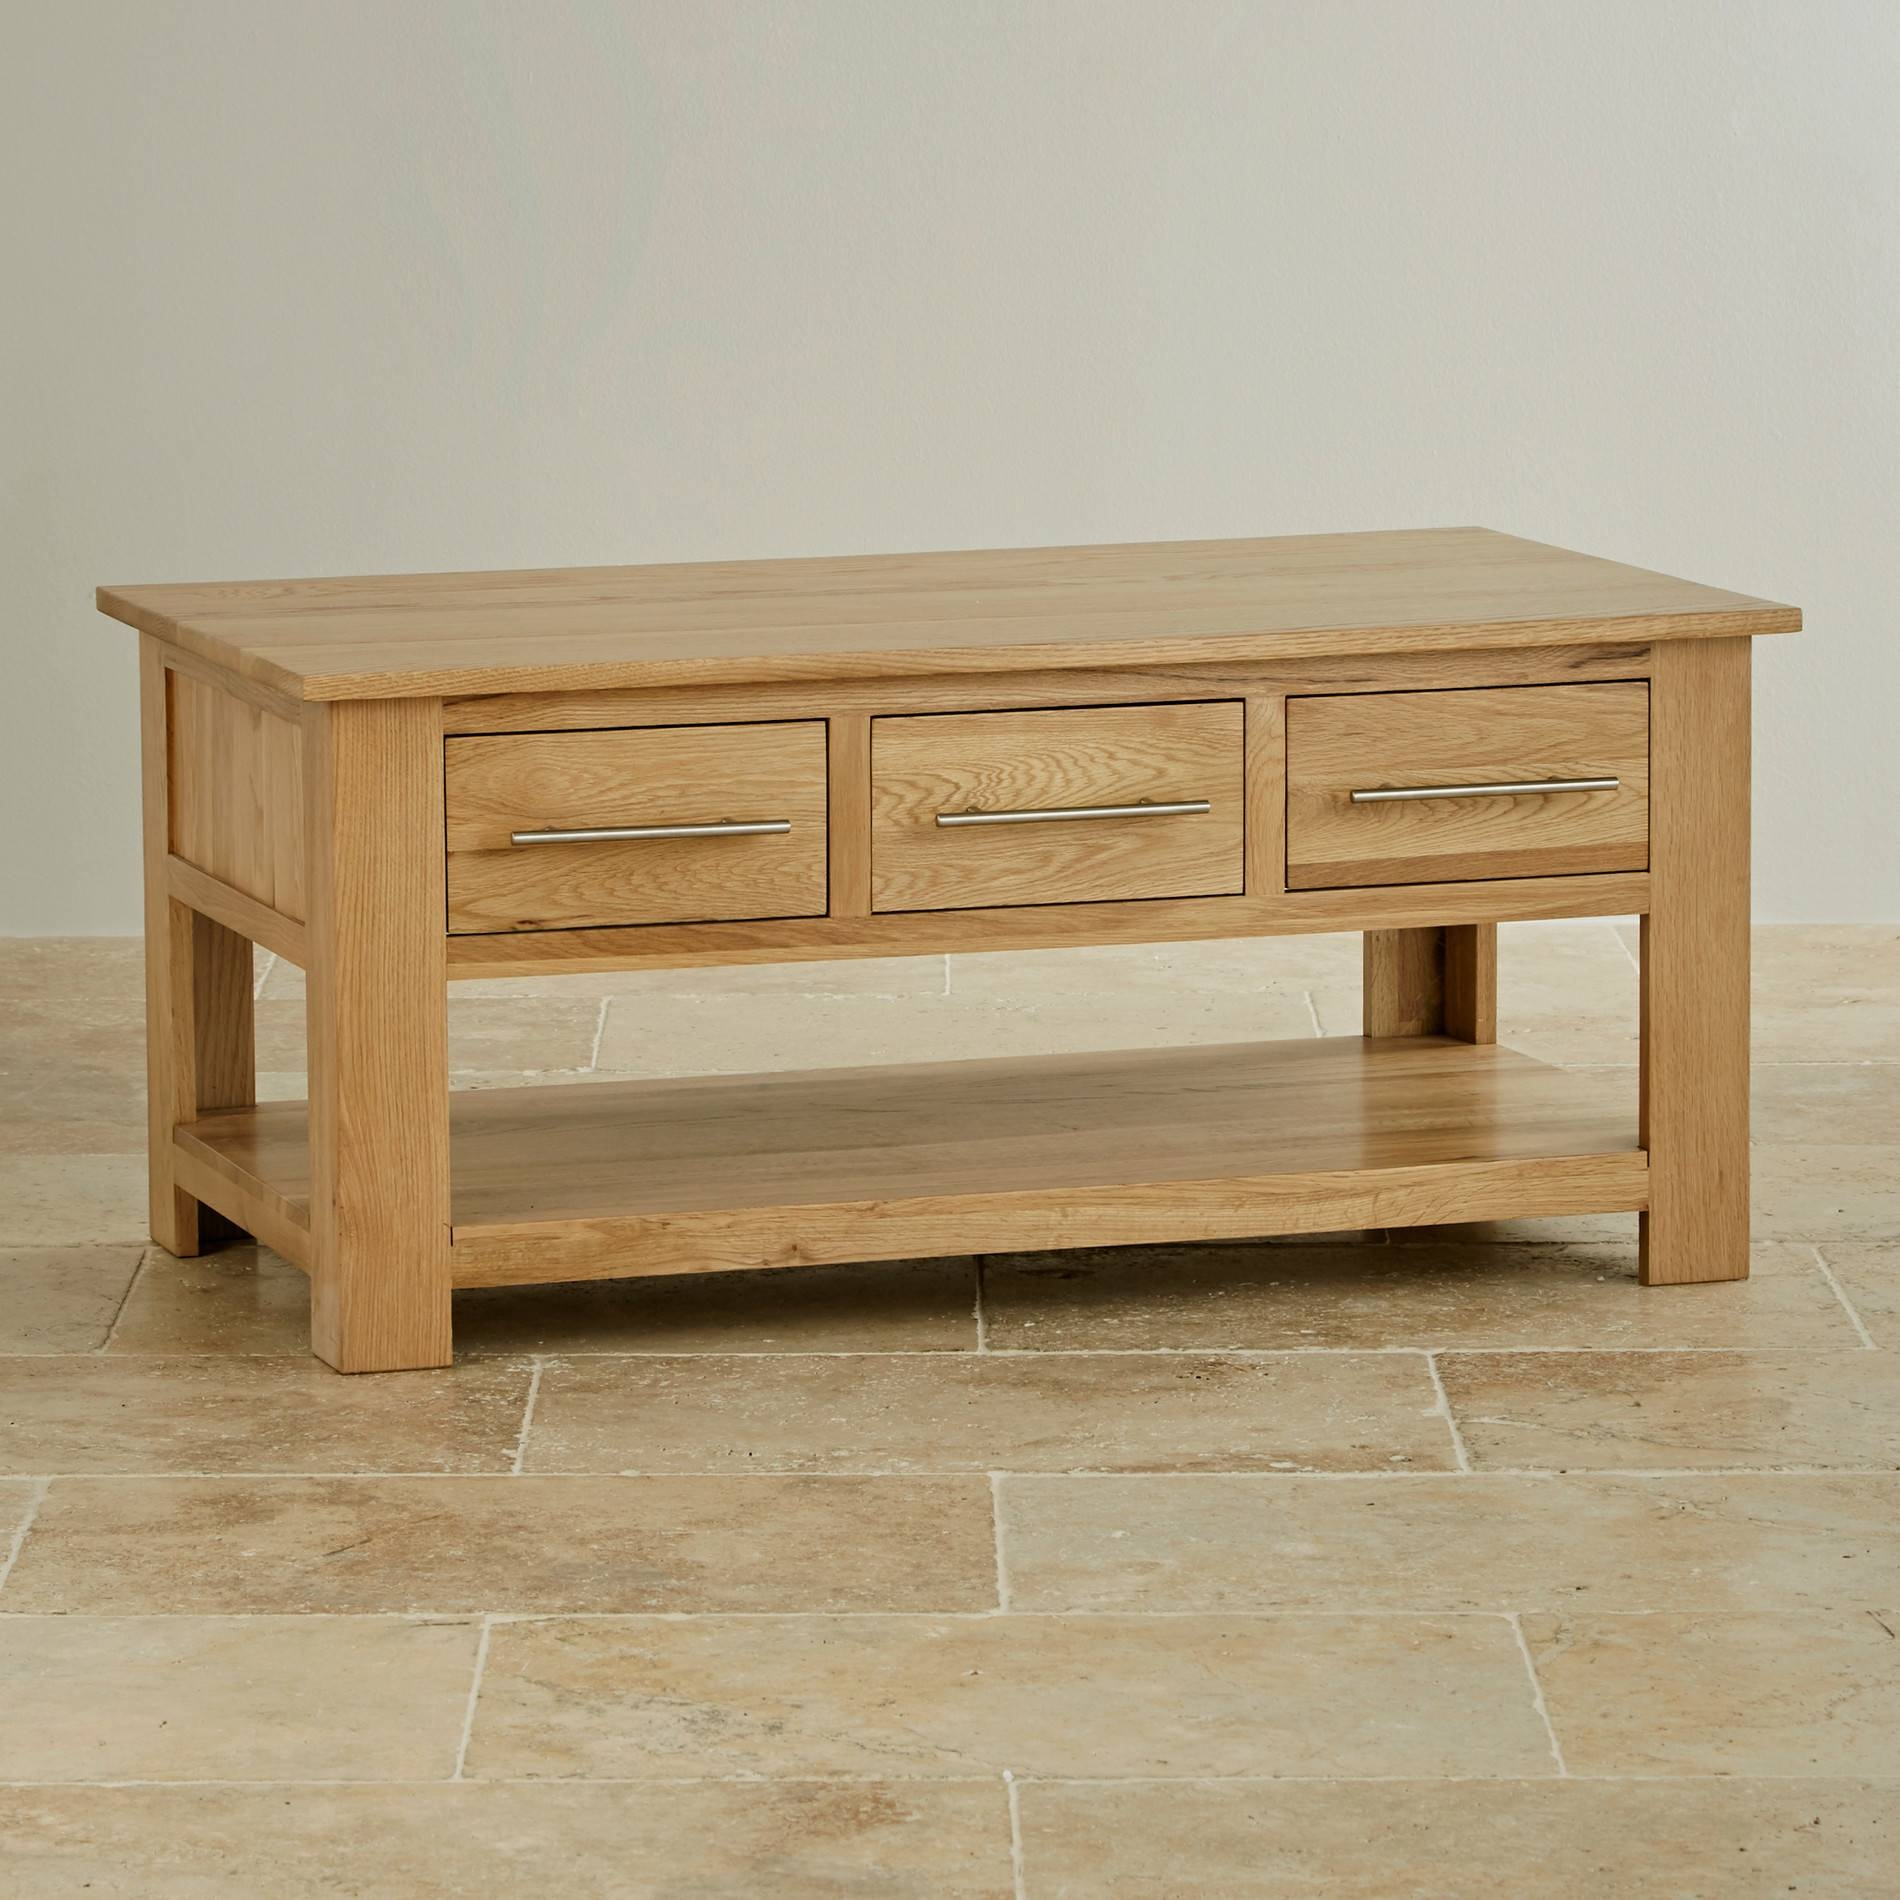 Featured Photo of Oak Coffee Table With Drawers